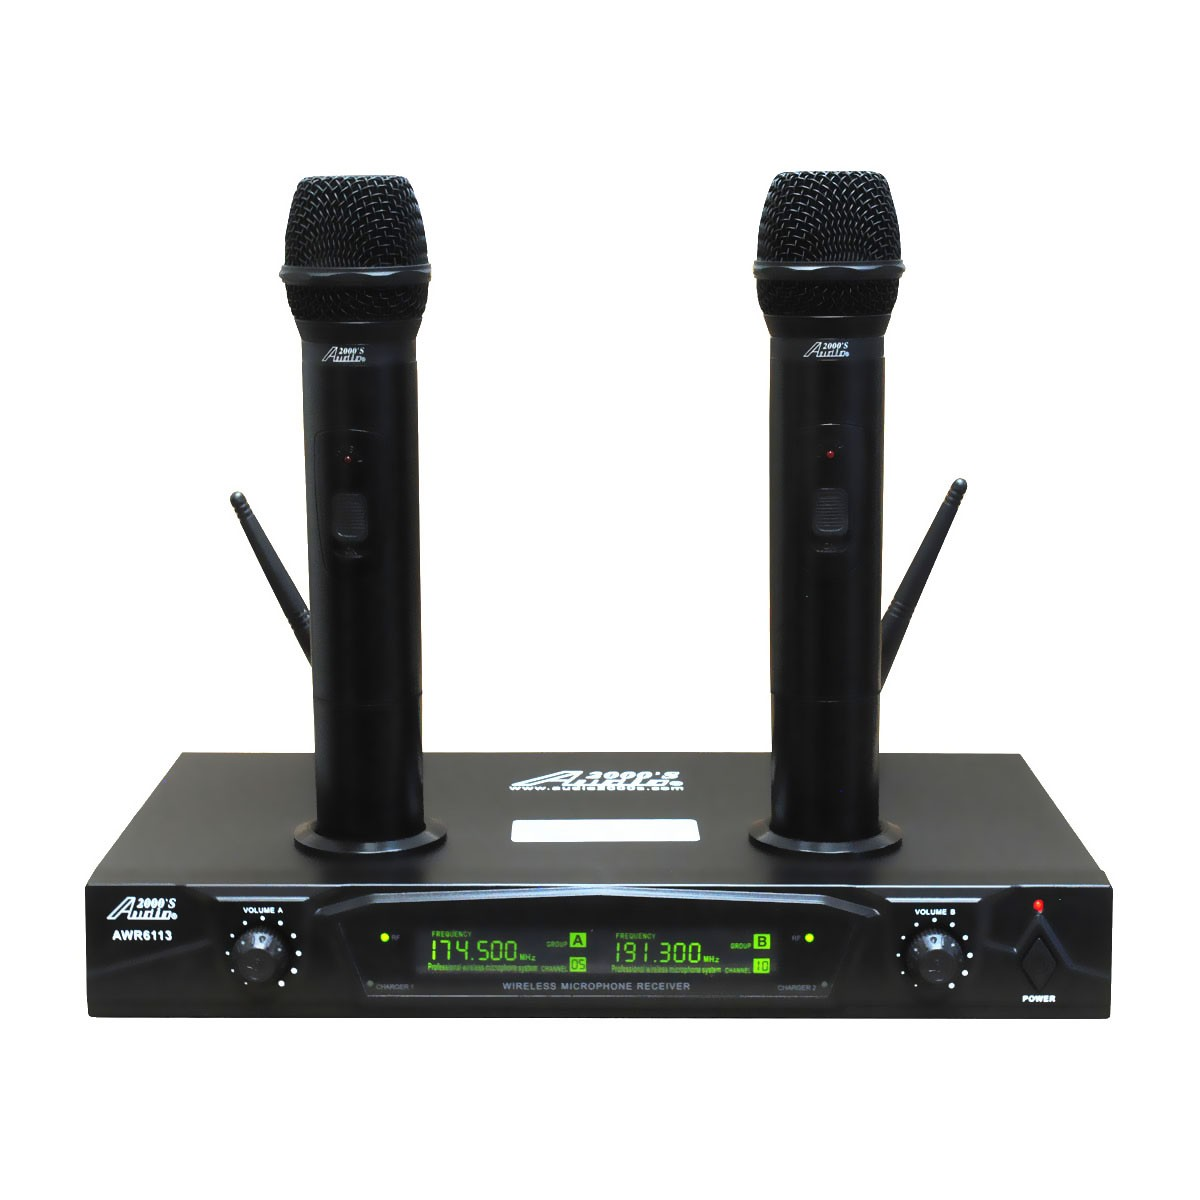 Audio 2000s AWM6113 Dual Channel Rechargeable VHF Wireless Microphone System by